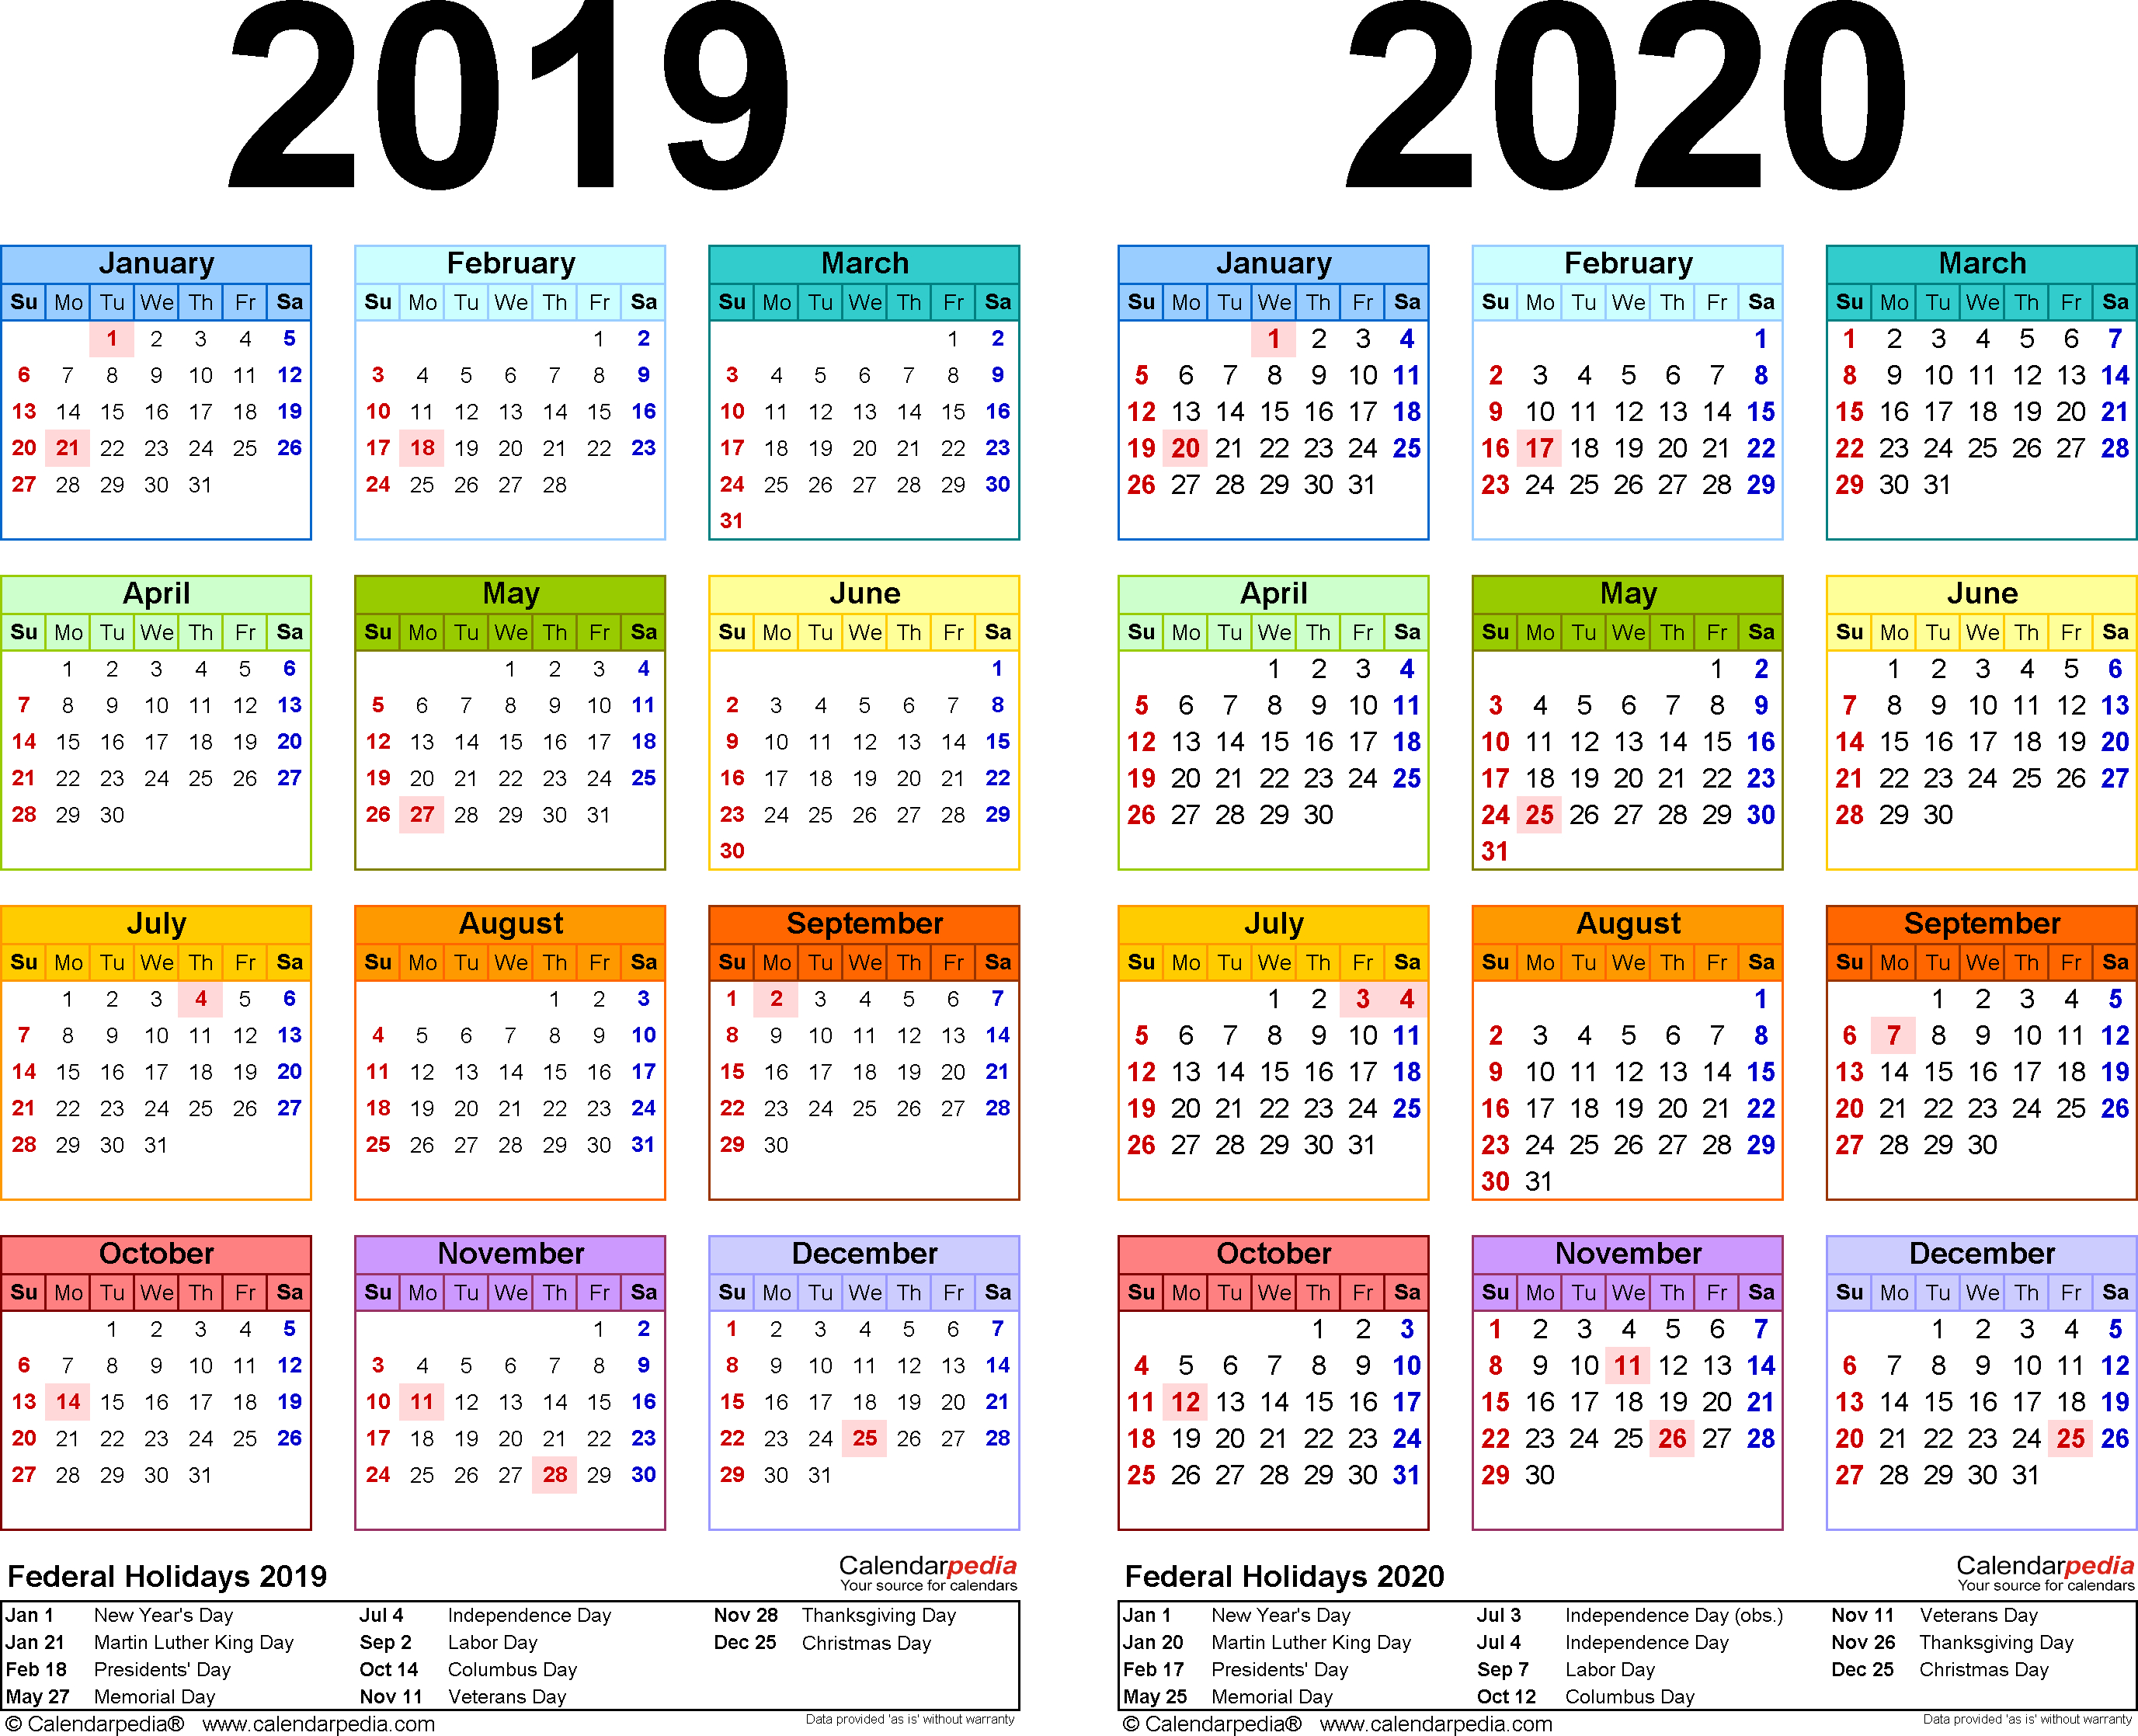 2019-2020 Calendar - Free Printable Two-Year Pdf Calendars with June 2019-June 2020 Yearly Calendar